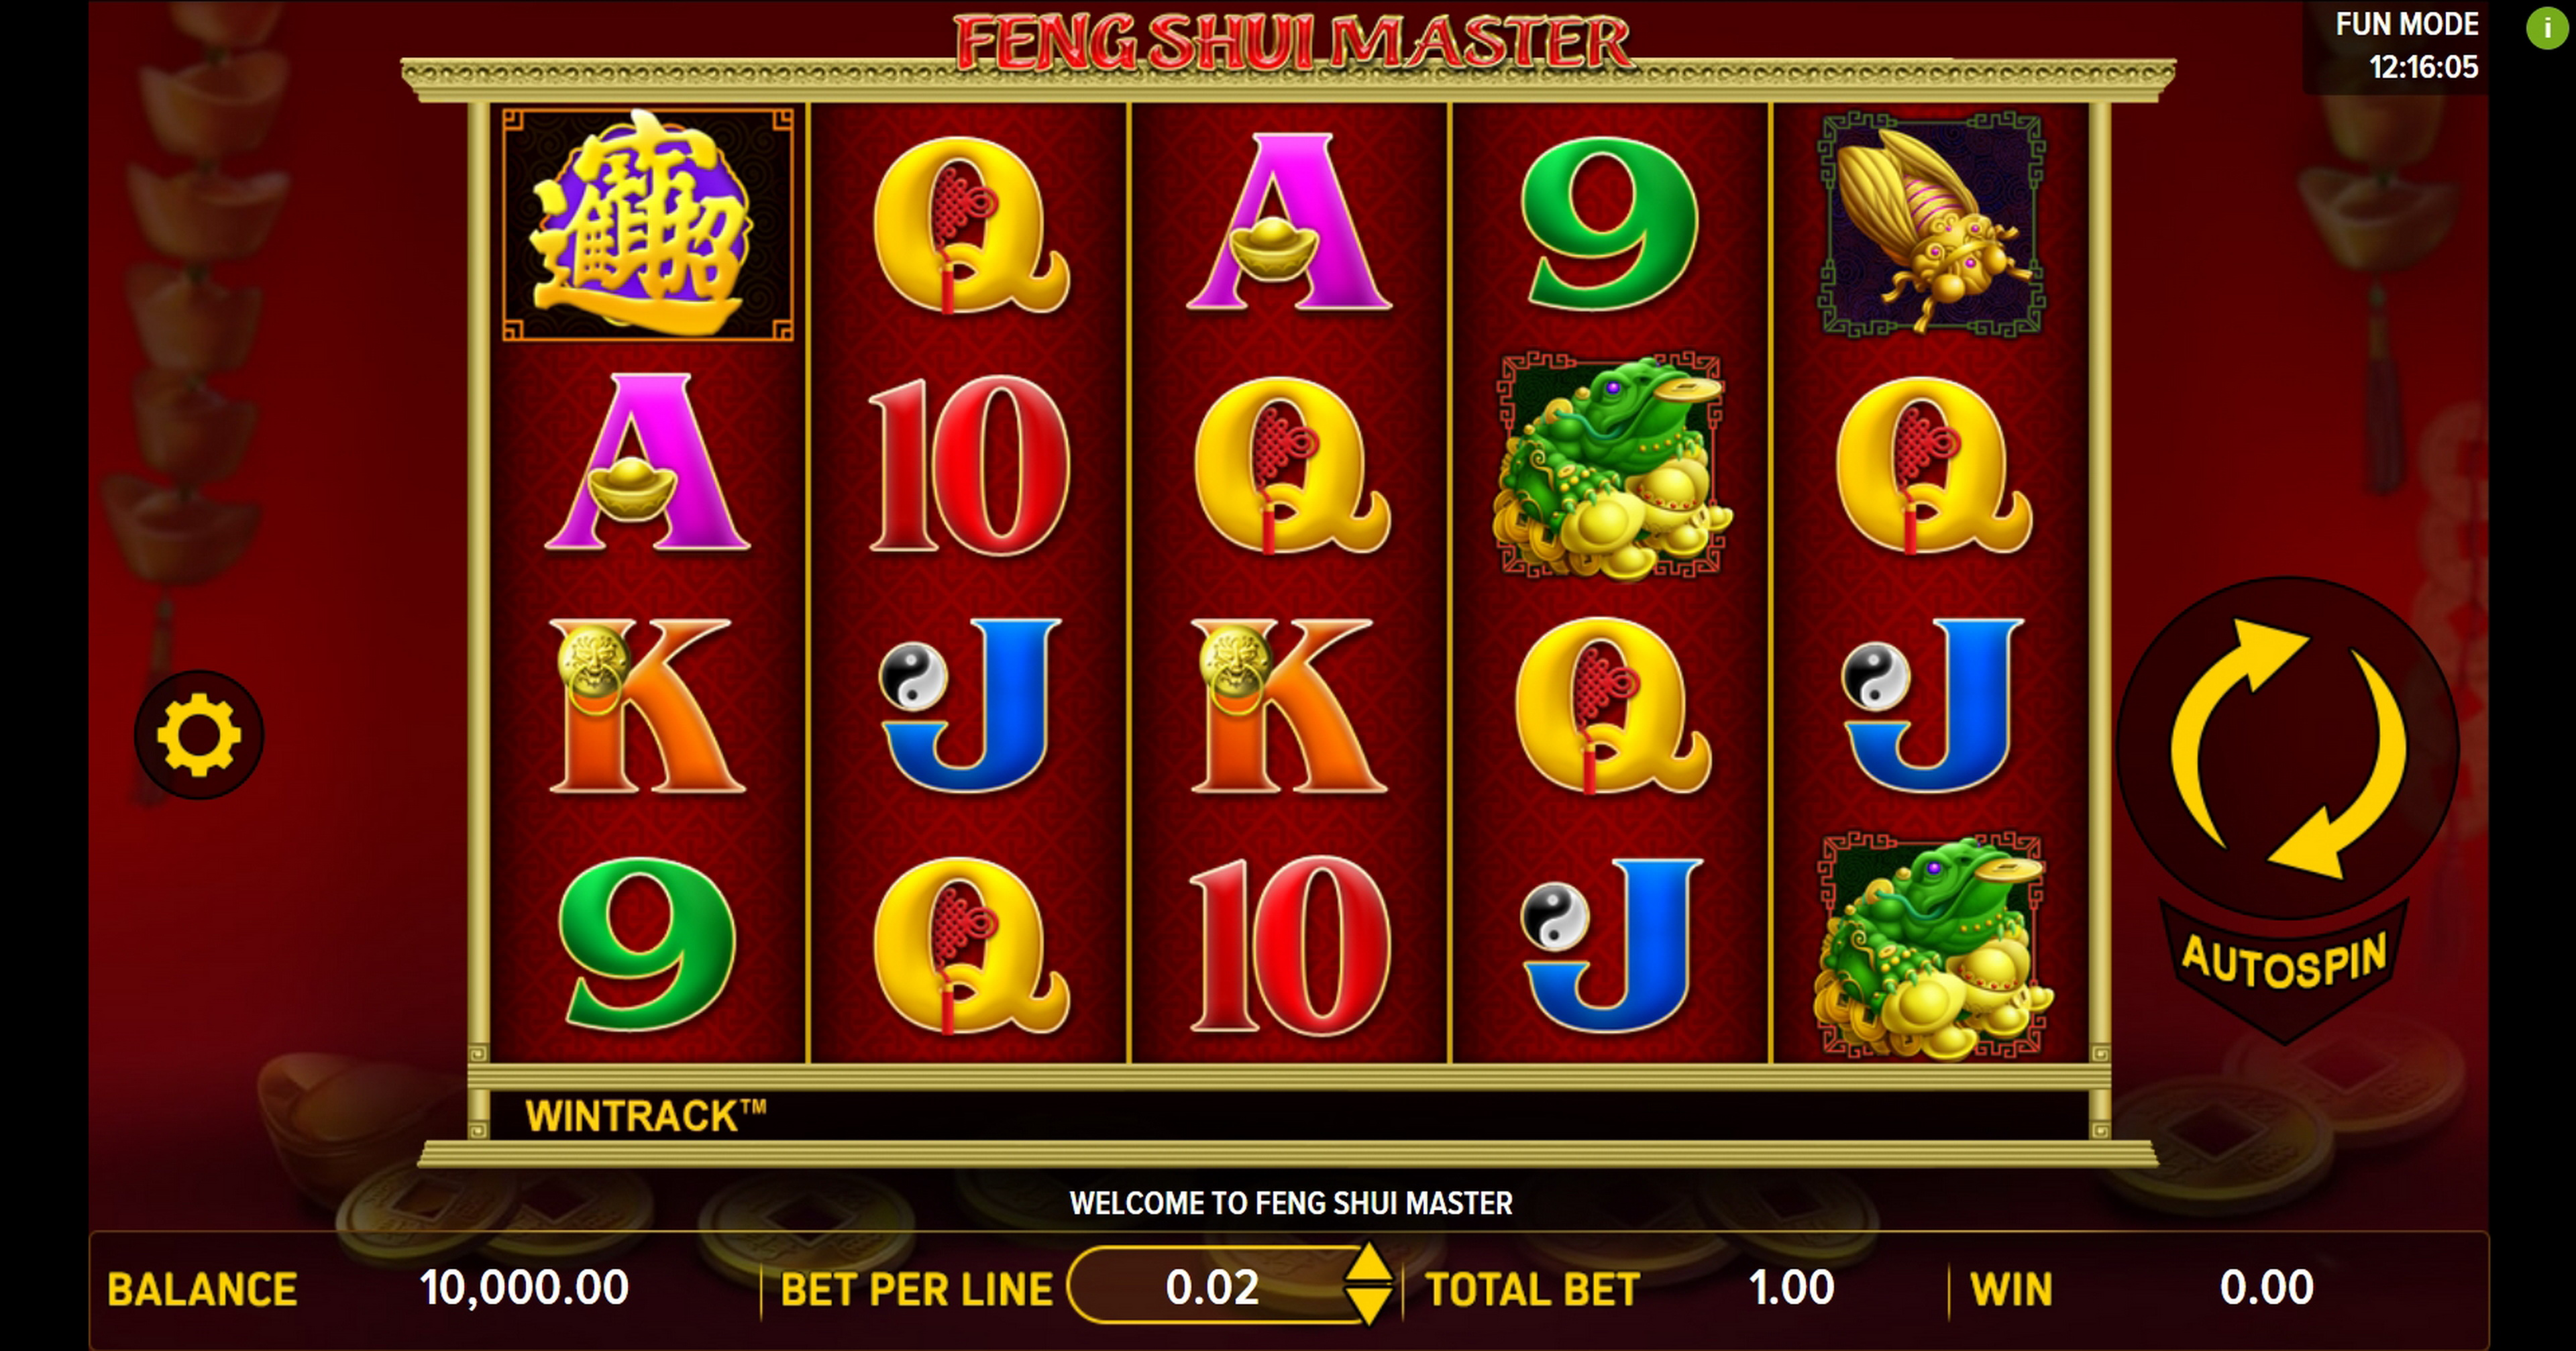 Reels in Feng Shui Master (Aspect Gaming) Slot Game by Aspect Gaming